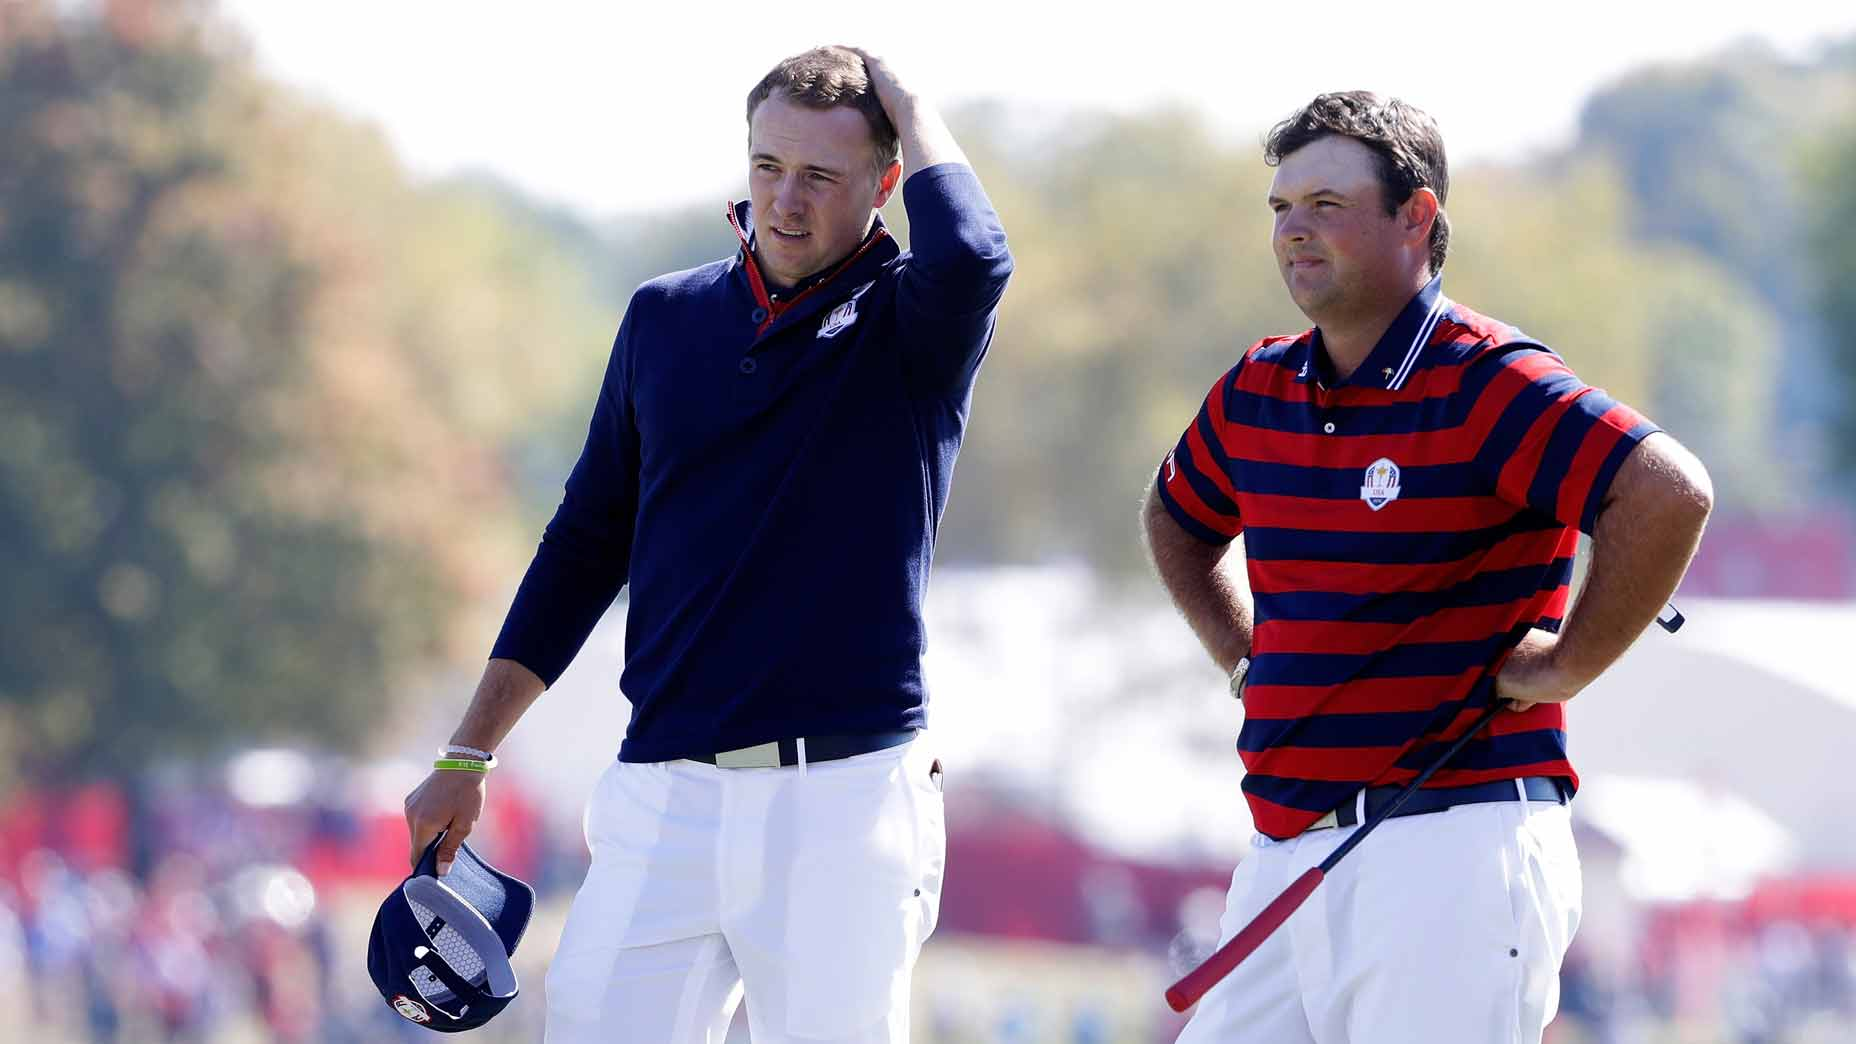 Jordan Spieth goes deep on the lead-up to 2018 Ryder Cup drama with Patrick Reed